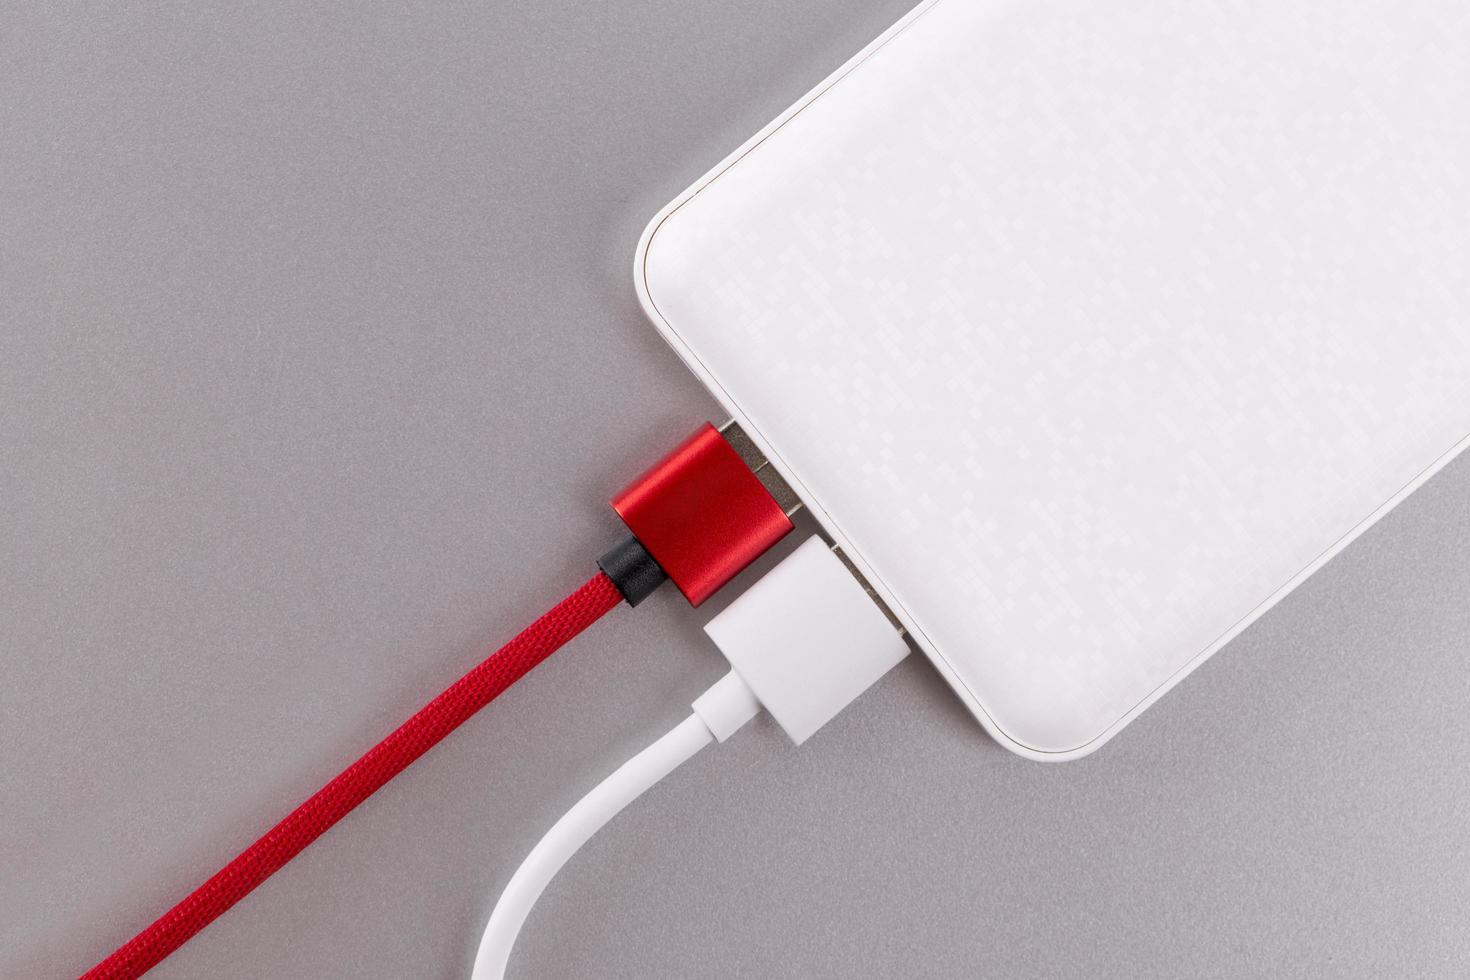 Power bank on a gray background photo